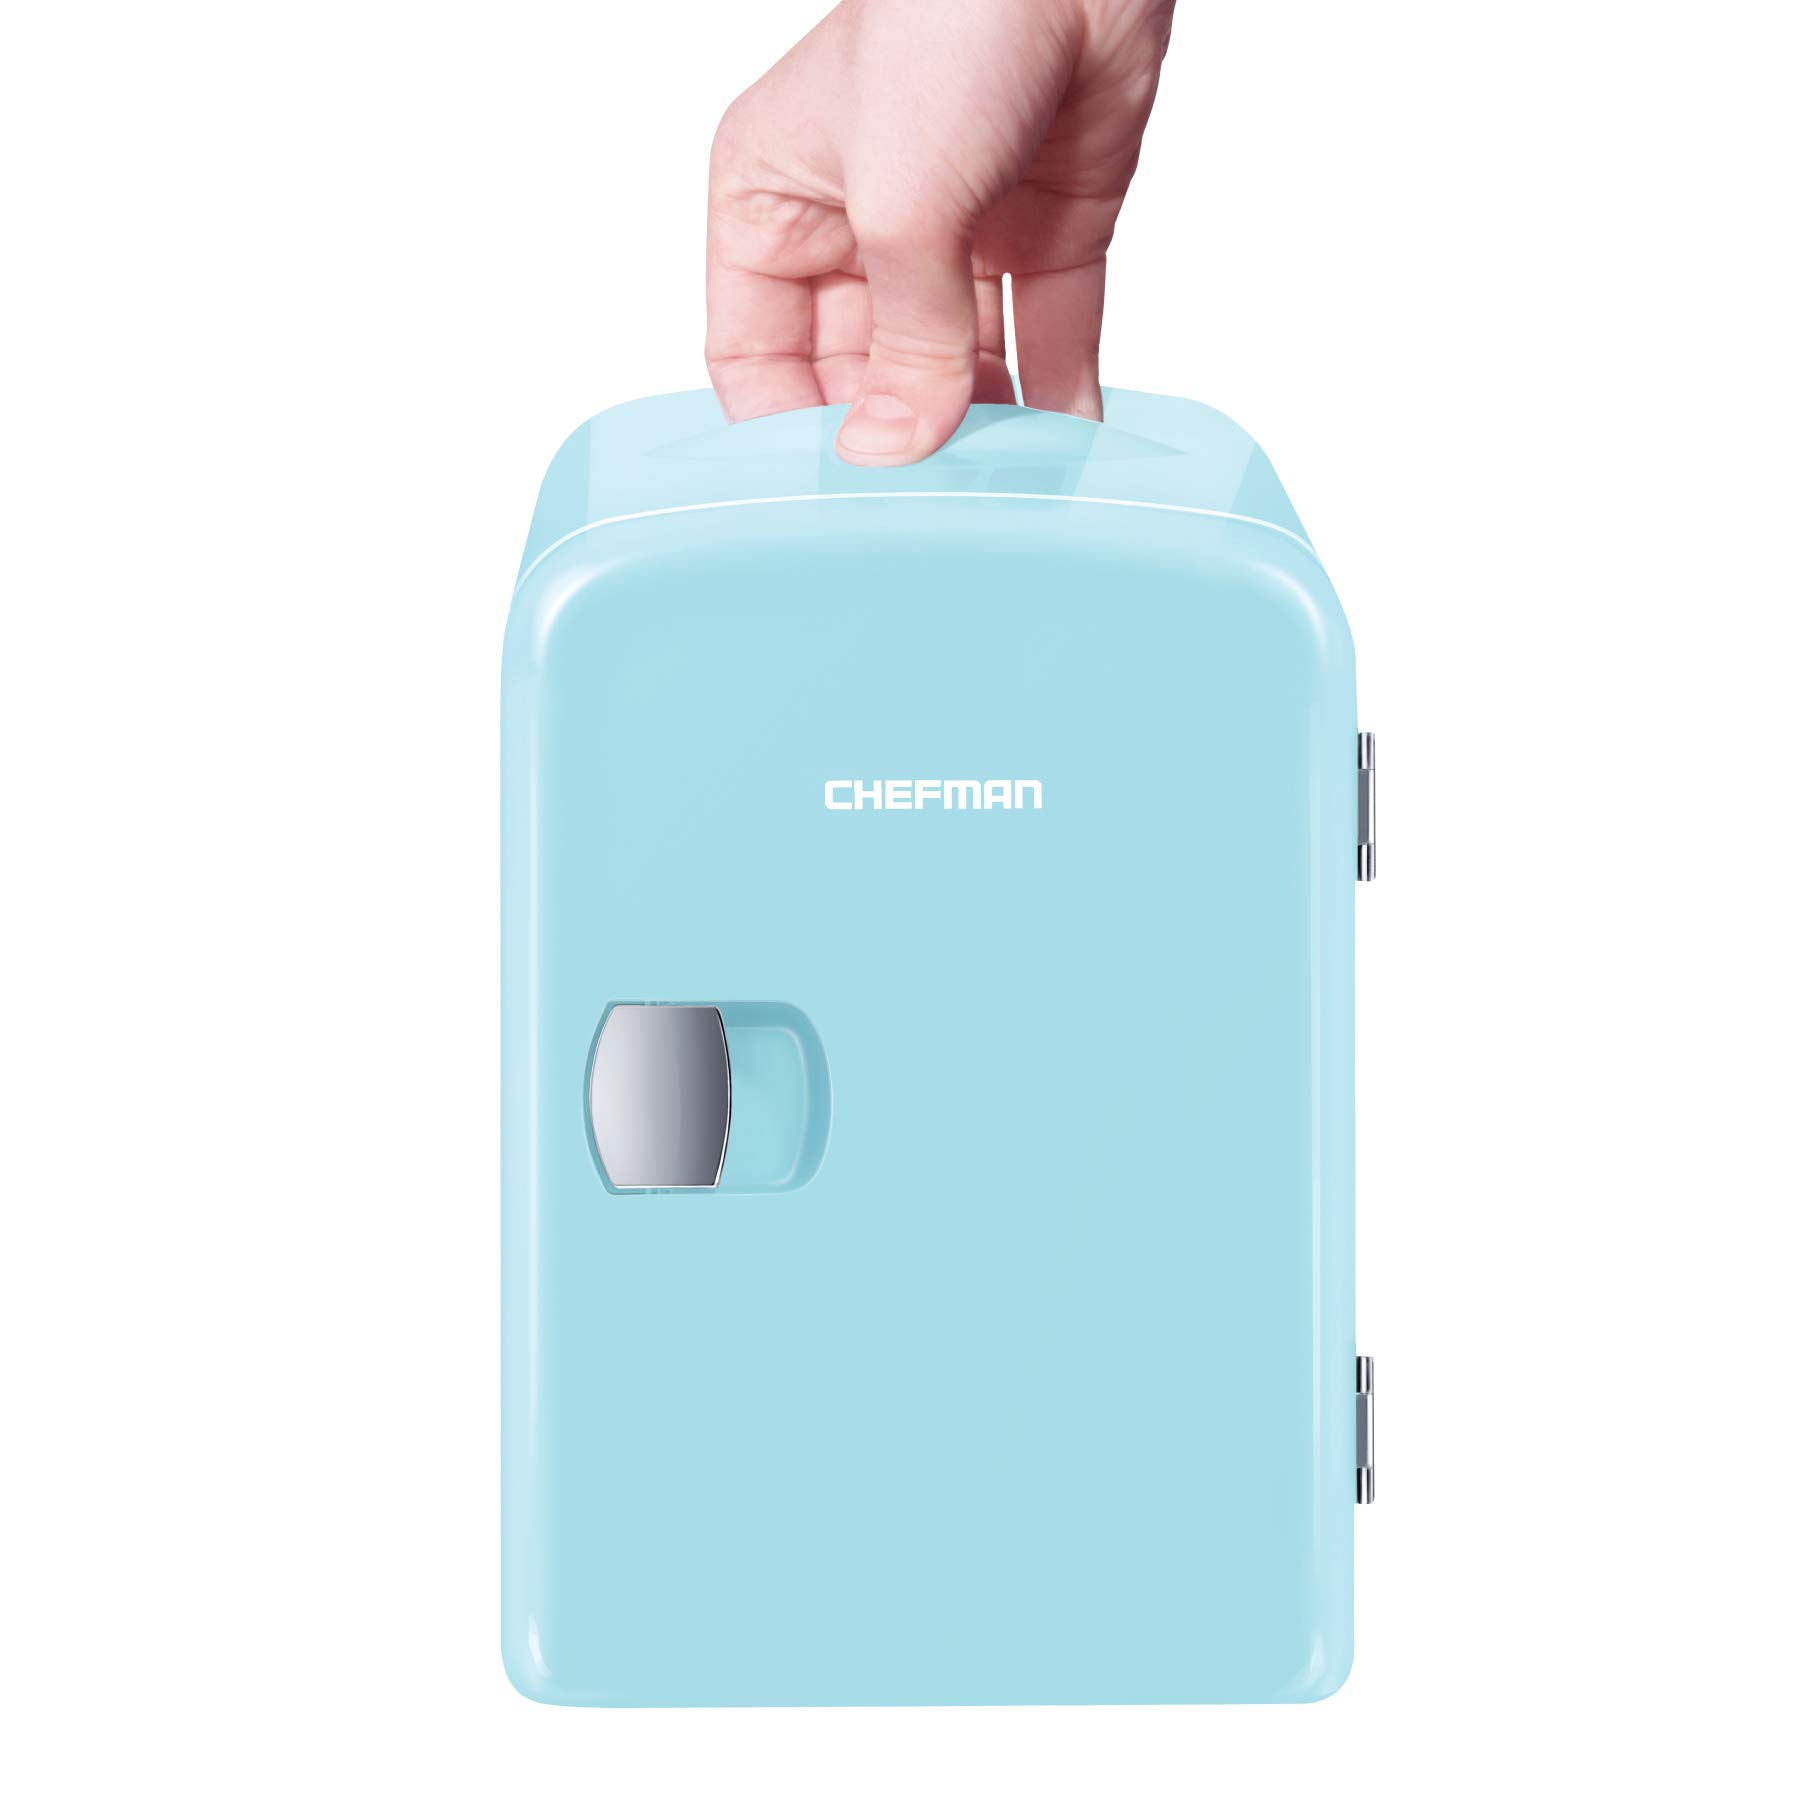 Chefman Mini Portable Compact Personal Fridge Cools & Heats 4 Liter Capacity, Chills 6 12oz cans, 100% Freon-Free & Eco Friendly, Includes Plugs for Home Outlet & 12V Car Charger, Blue,